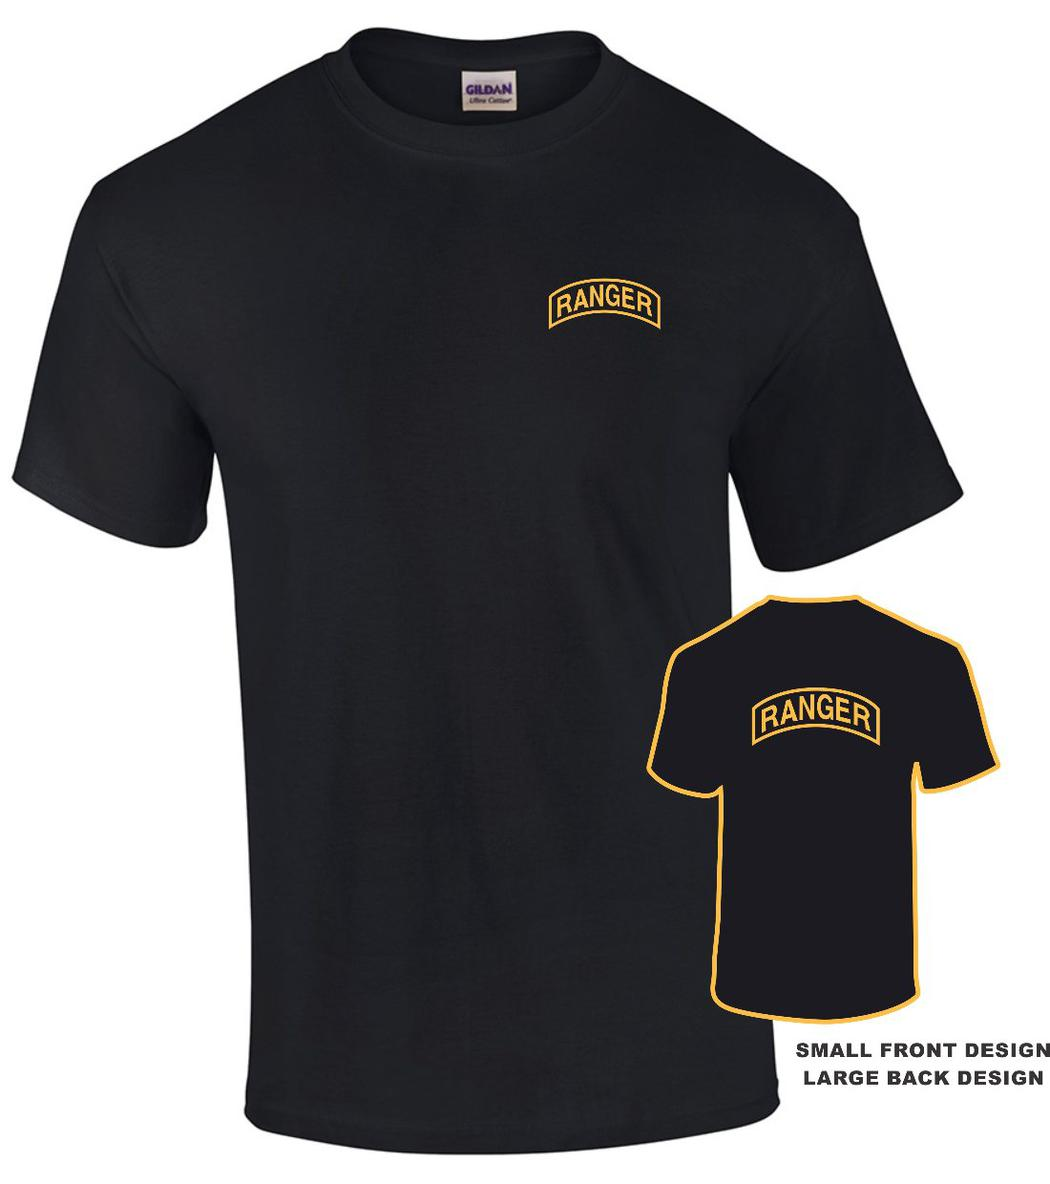 Custom imprint and embroidery u s army for Custom t shirts front and back